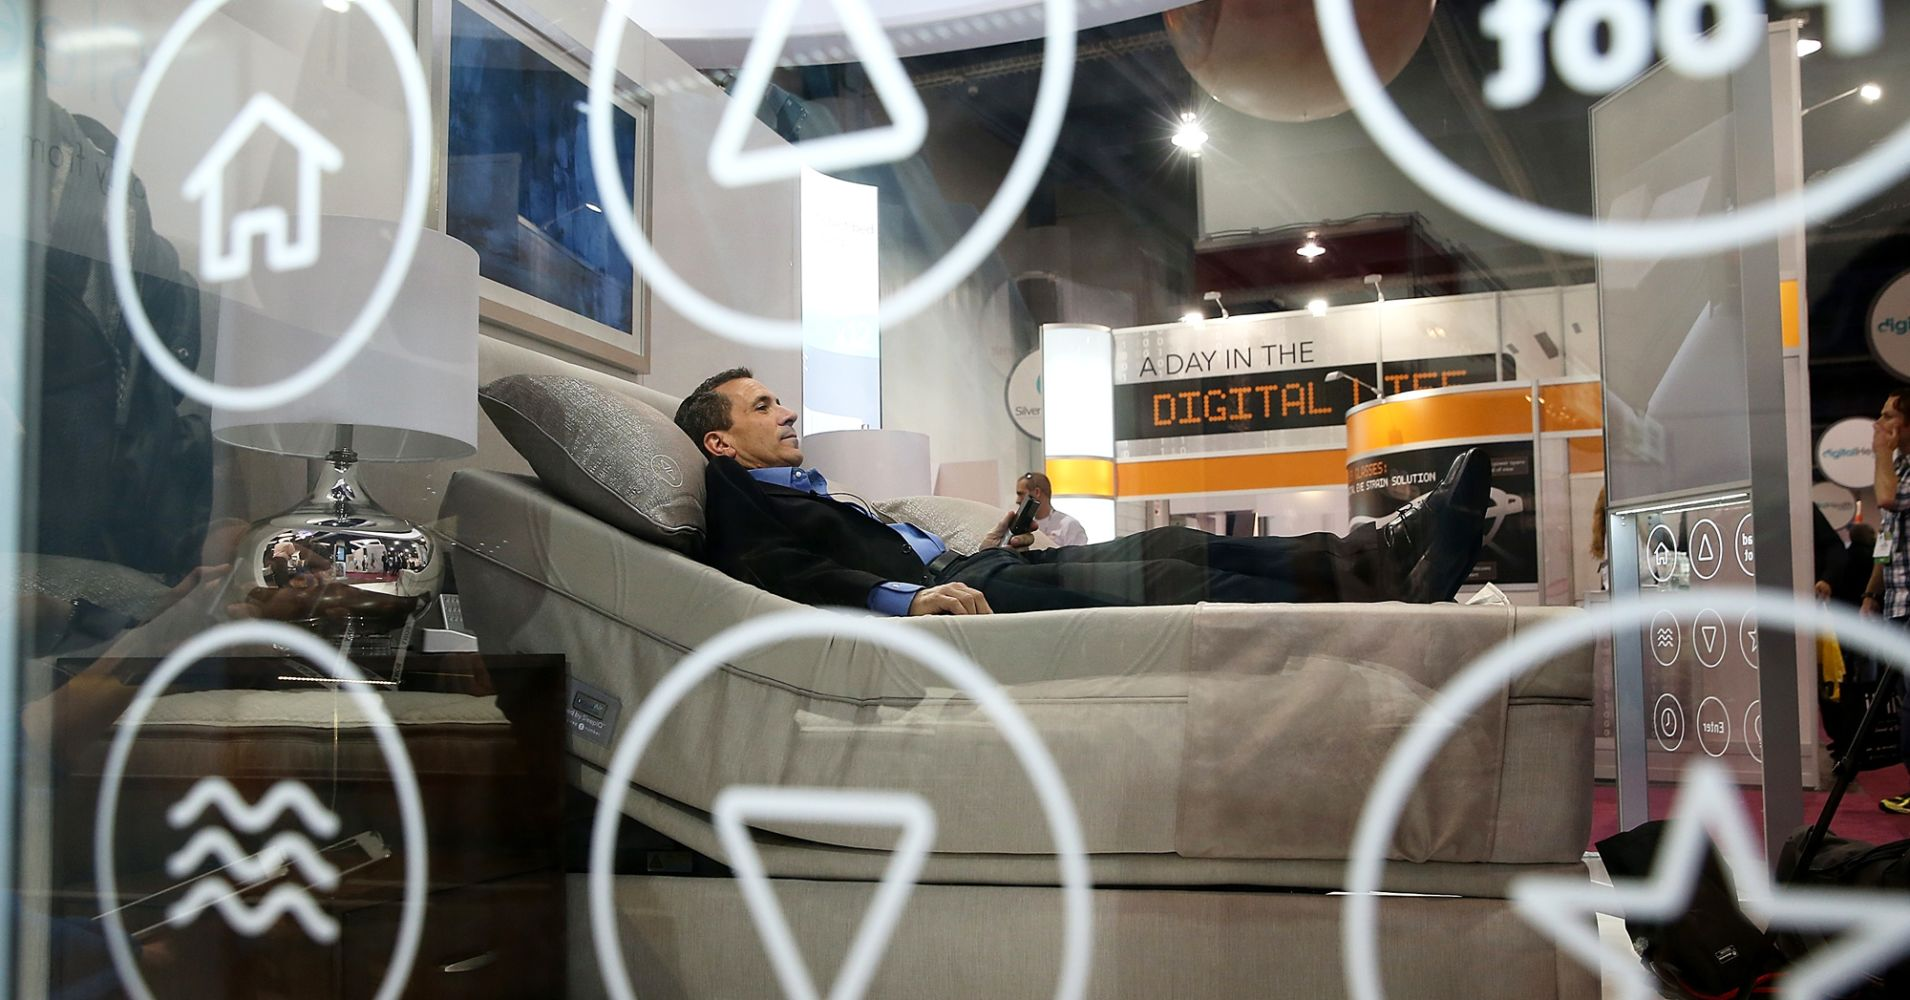 A Sleep Number representative lays on a new Sleep Number bed at the International CES in Las Vegas.